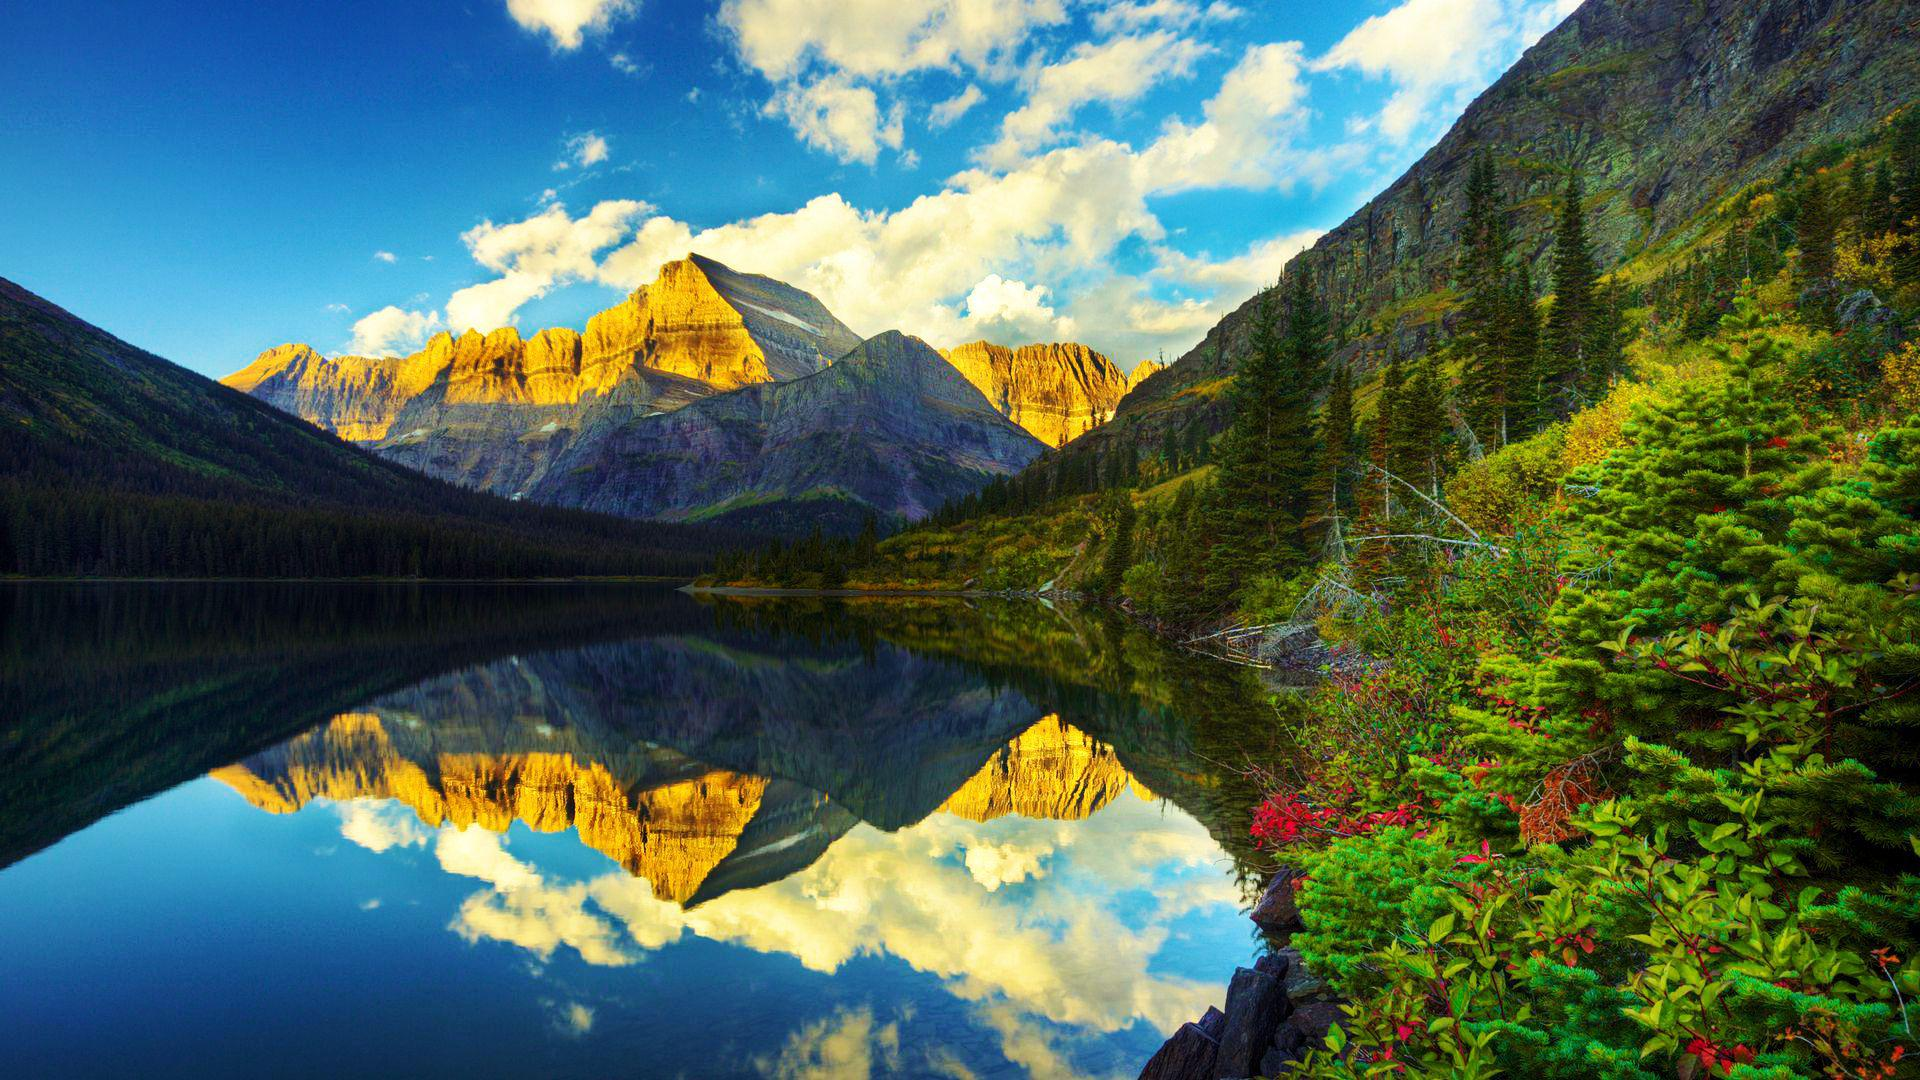 34 Glacier National Park Wallpaper Hd On Wallpapersafari